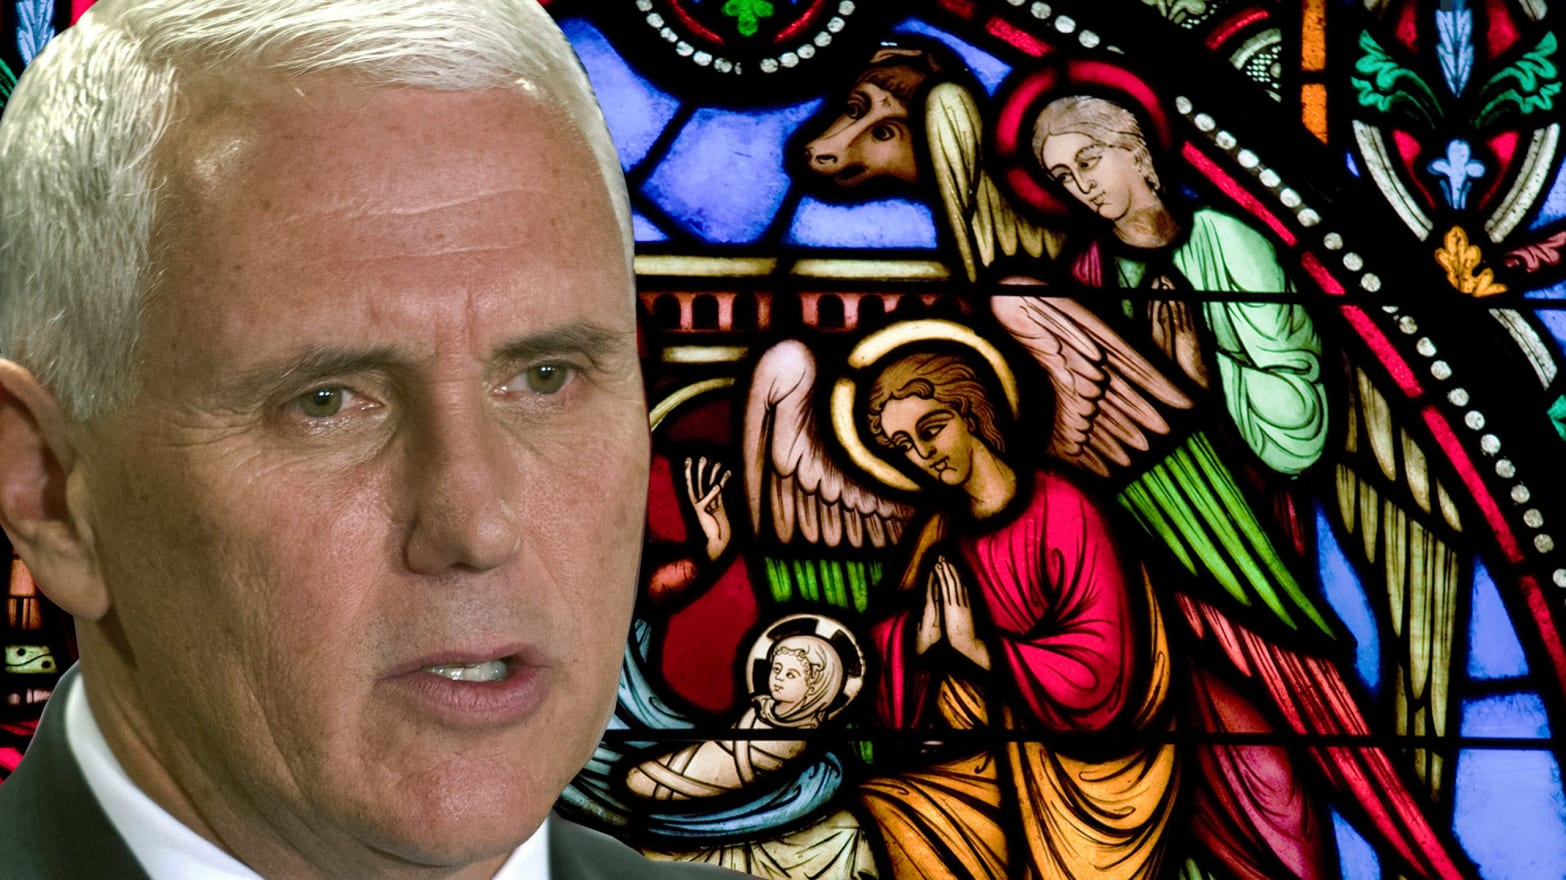 Mike Pence, Postmodern Evangelical Catholic Conservative